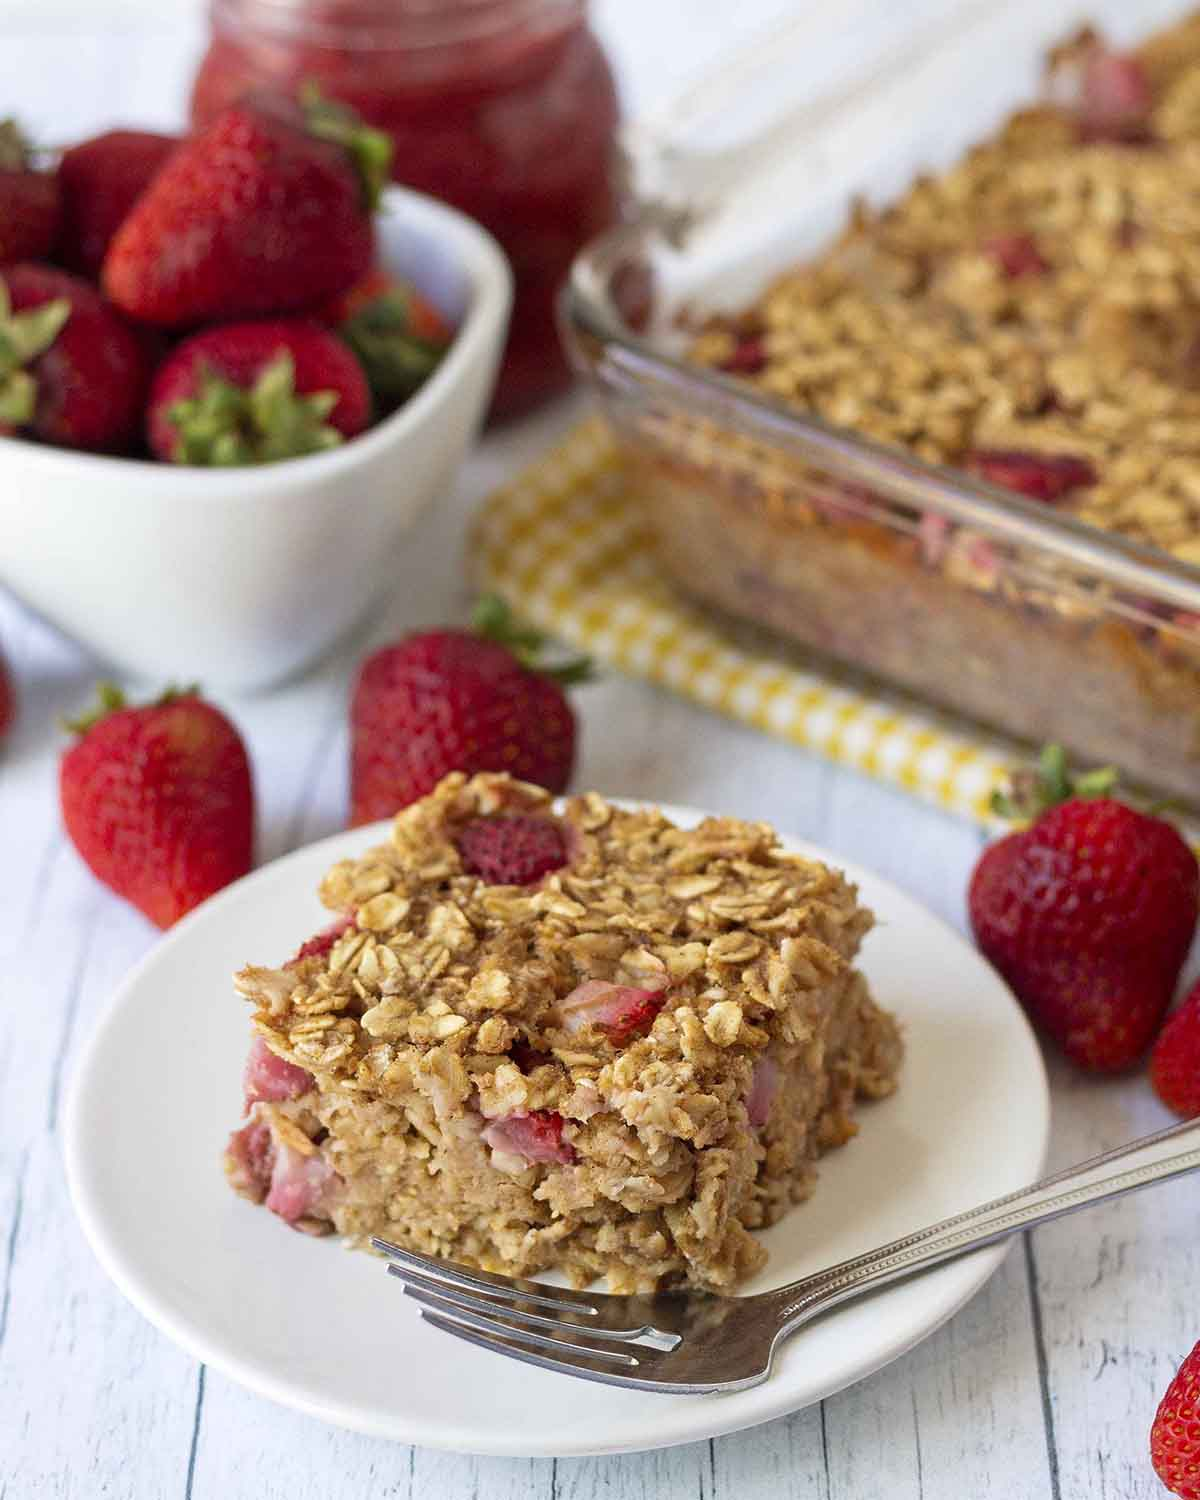 A slice of freshly baked strawberry oatmeal casserole on a plate. Fresh strawberries are around the plate.